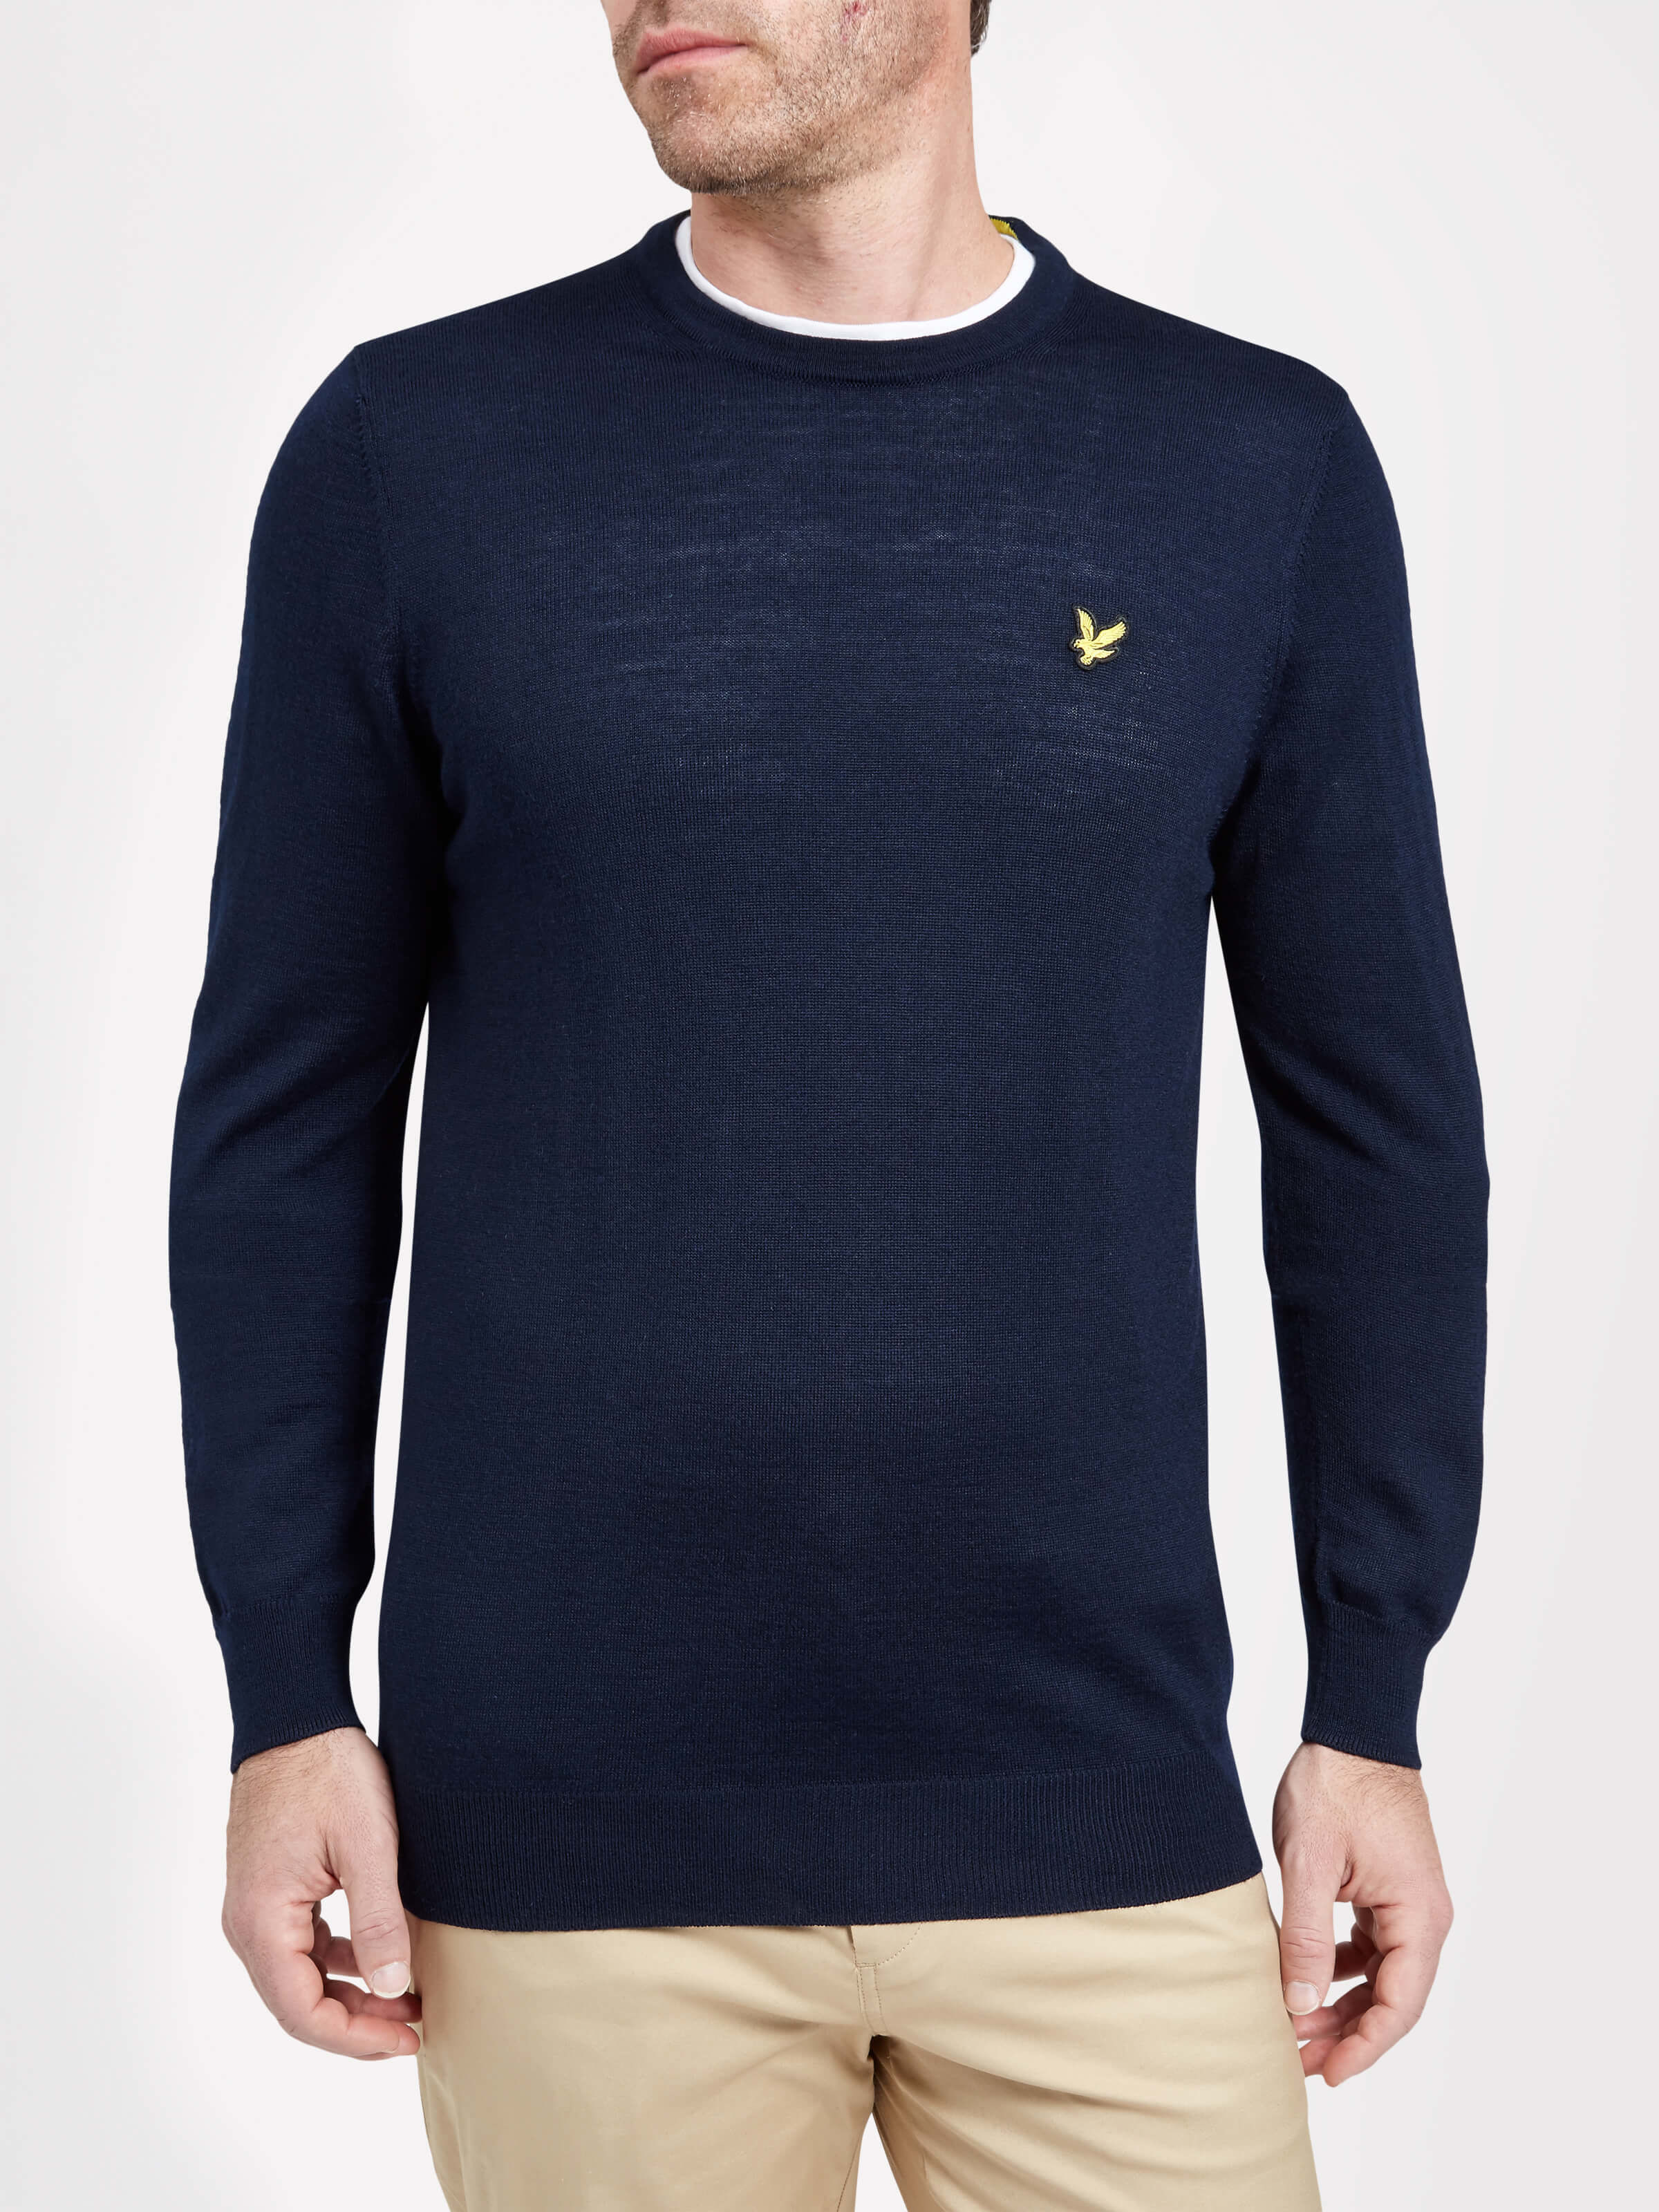 Lyle and Scott Navy Tain Crew Neck Pullover